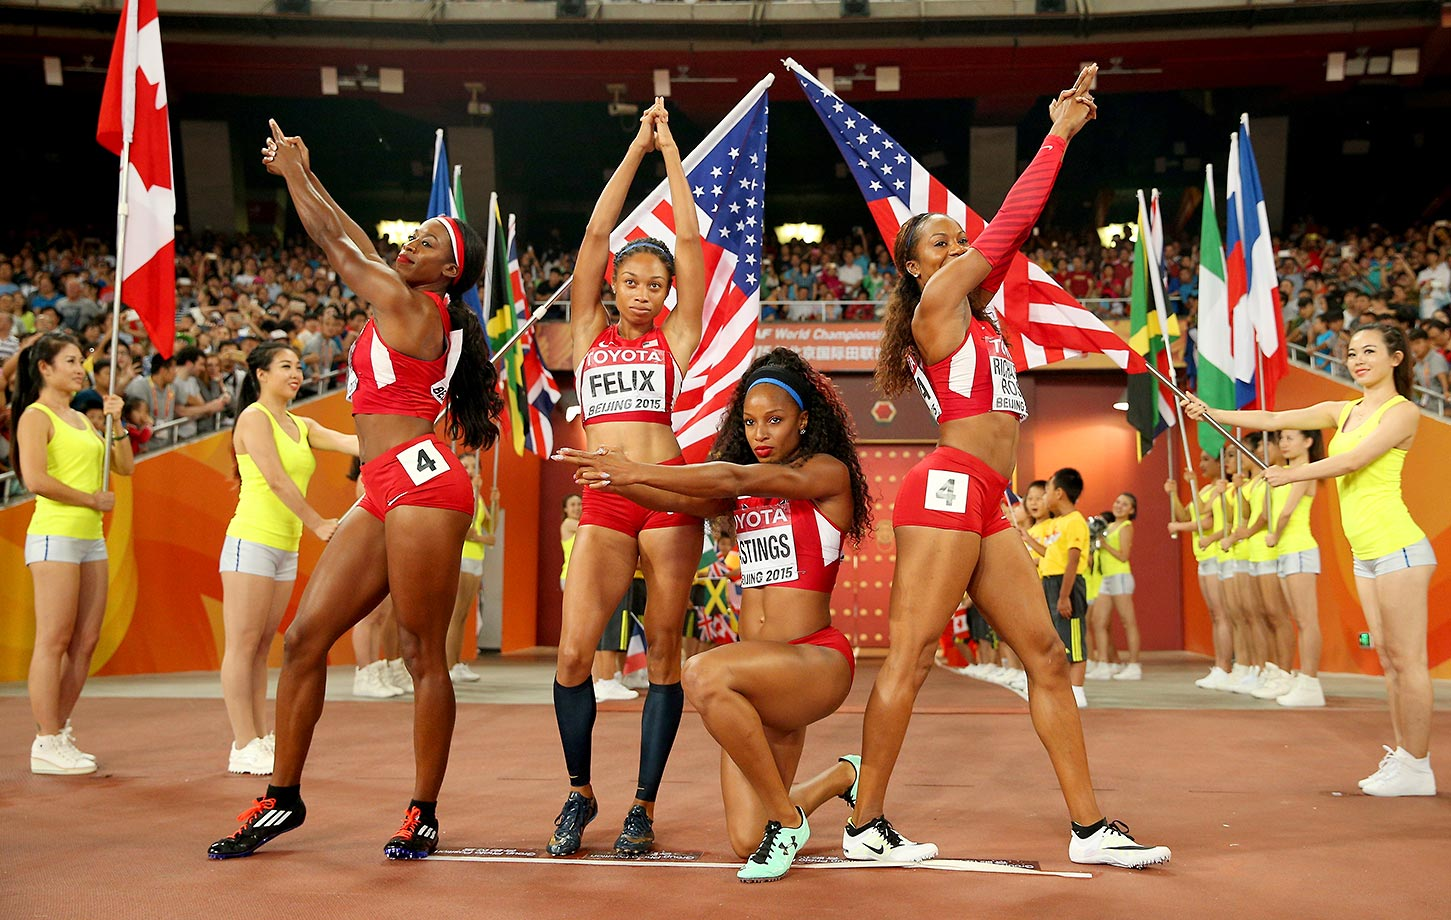 Francena McCorory, Sanya Richards-Ross, Natasha Hastings and Allyson Felix of the U.S. pose before the start of the 4x400 relay final at the IAAF World Athletics Championships.